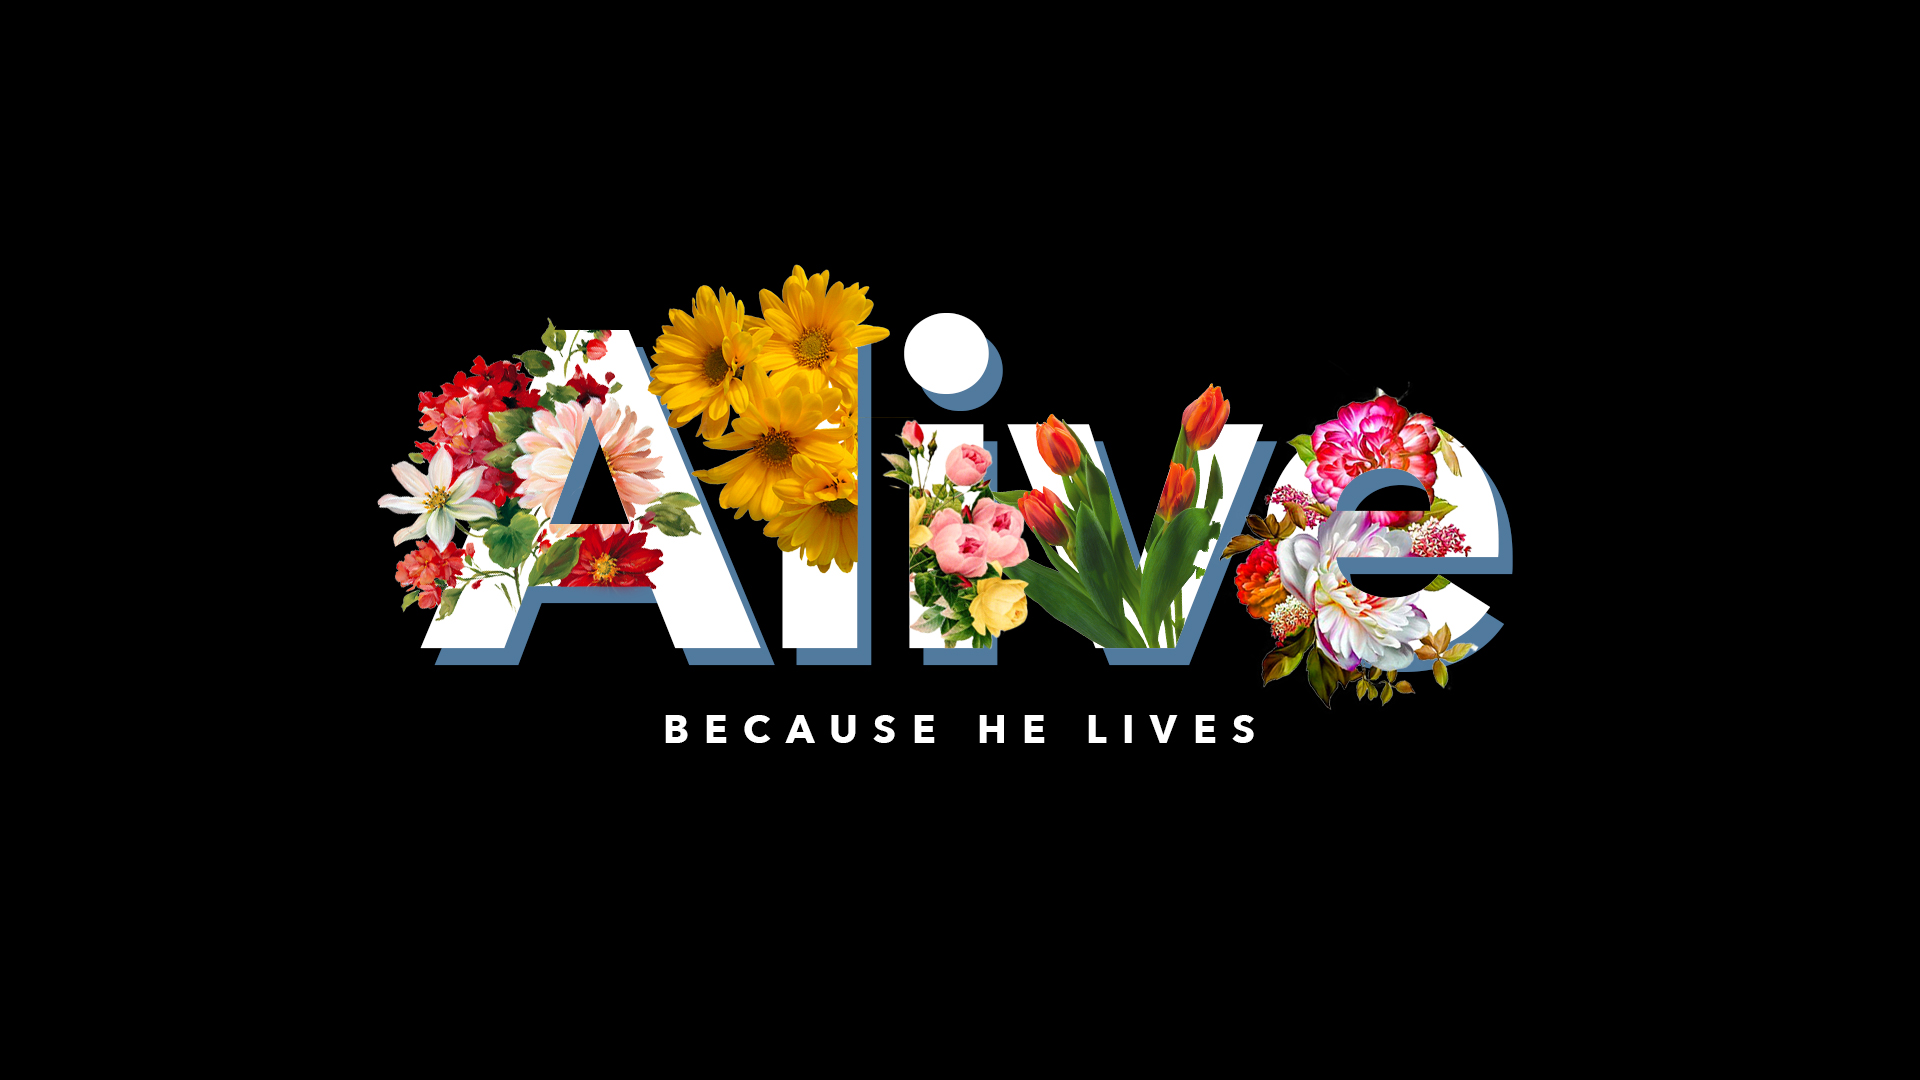 Alive_BLACK-FOR PRINT.jpg